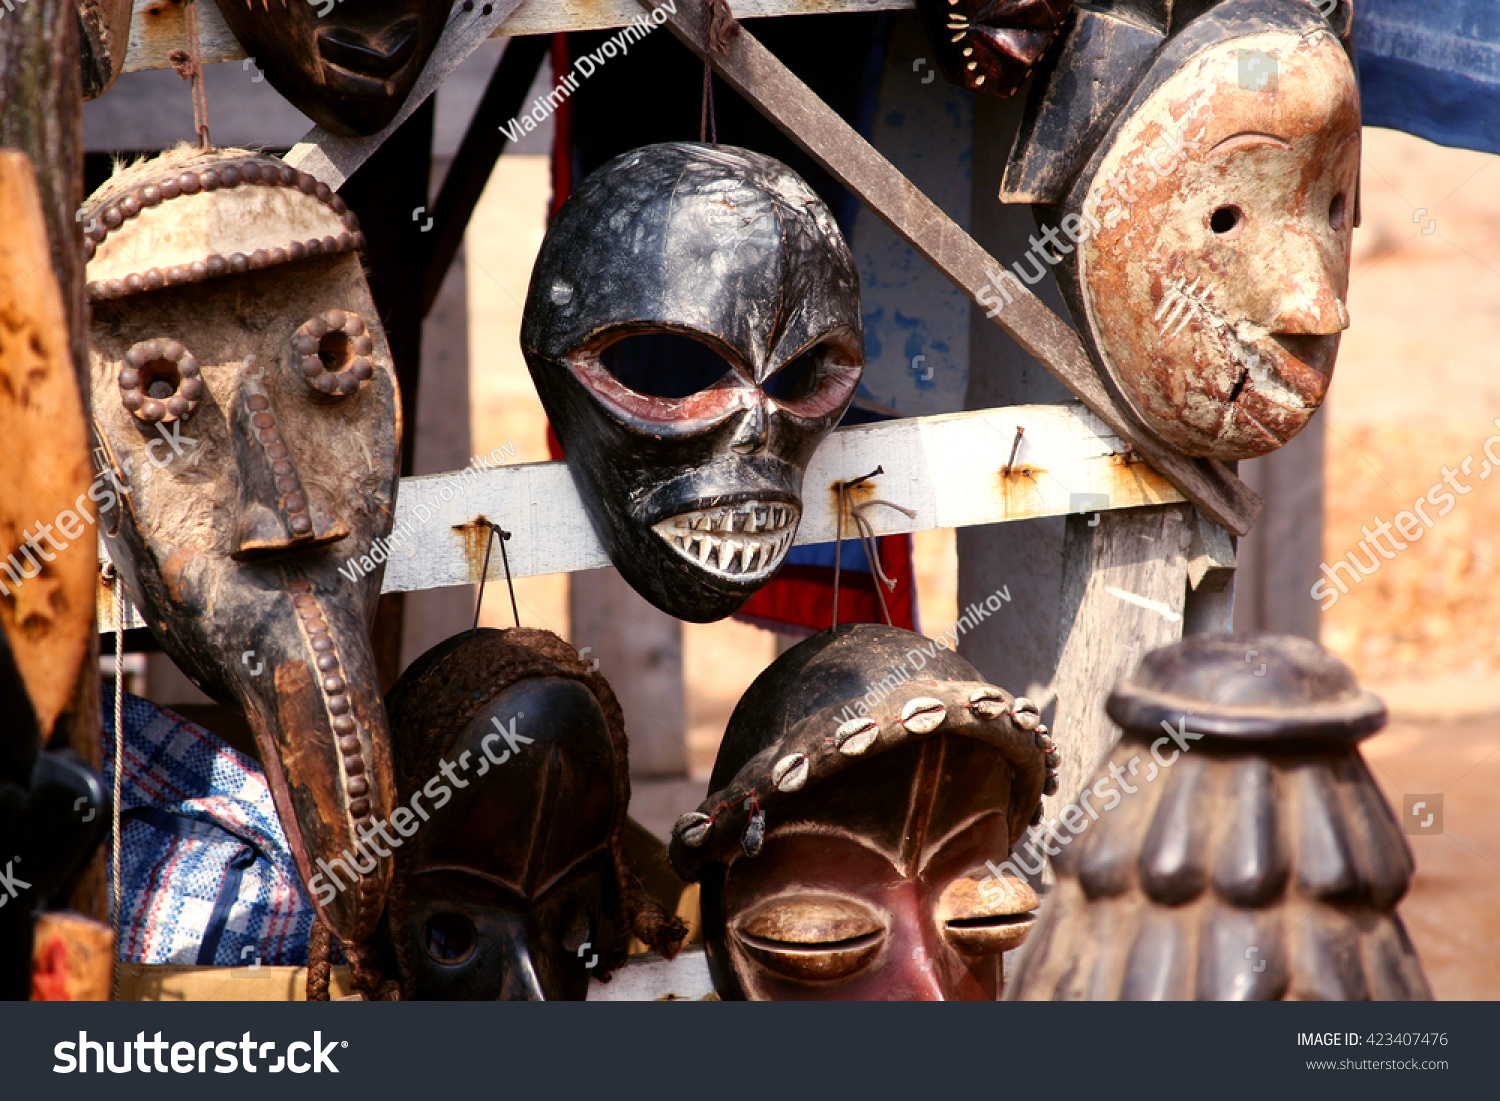 traditional african masks related to voodoo religion for sale at the market of annual beninese voodoo